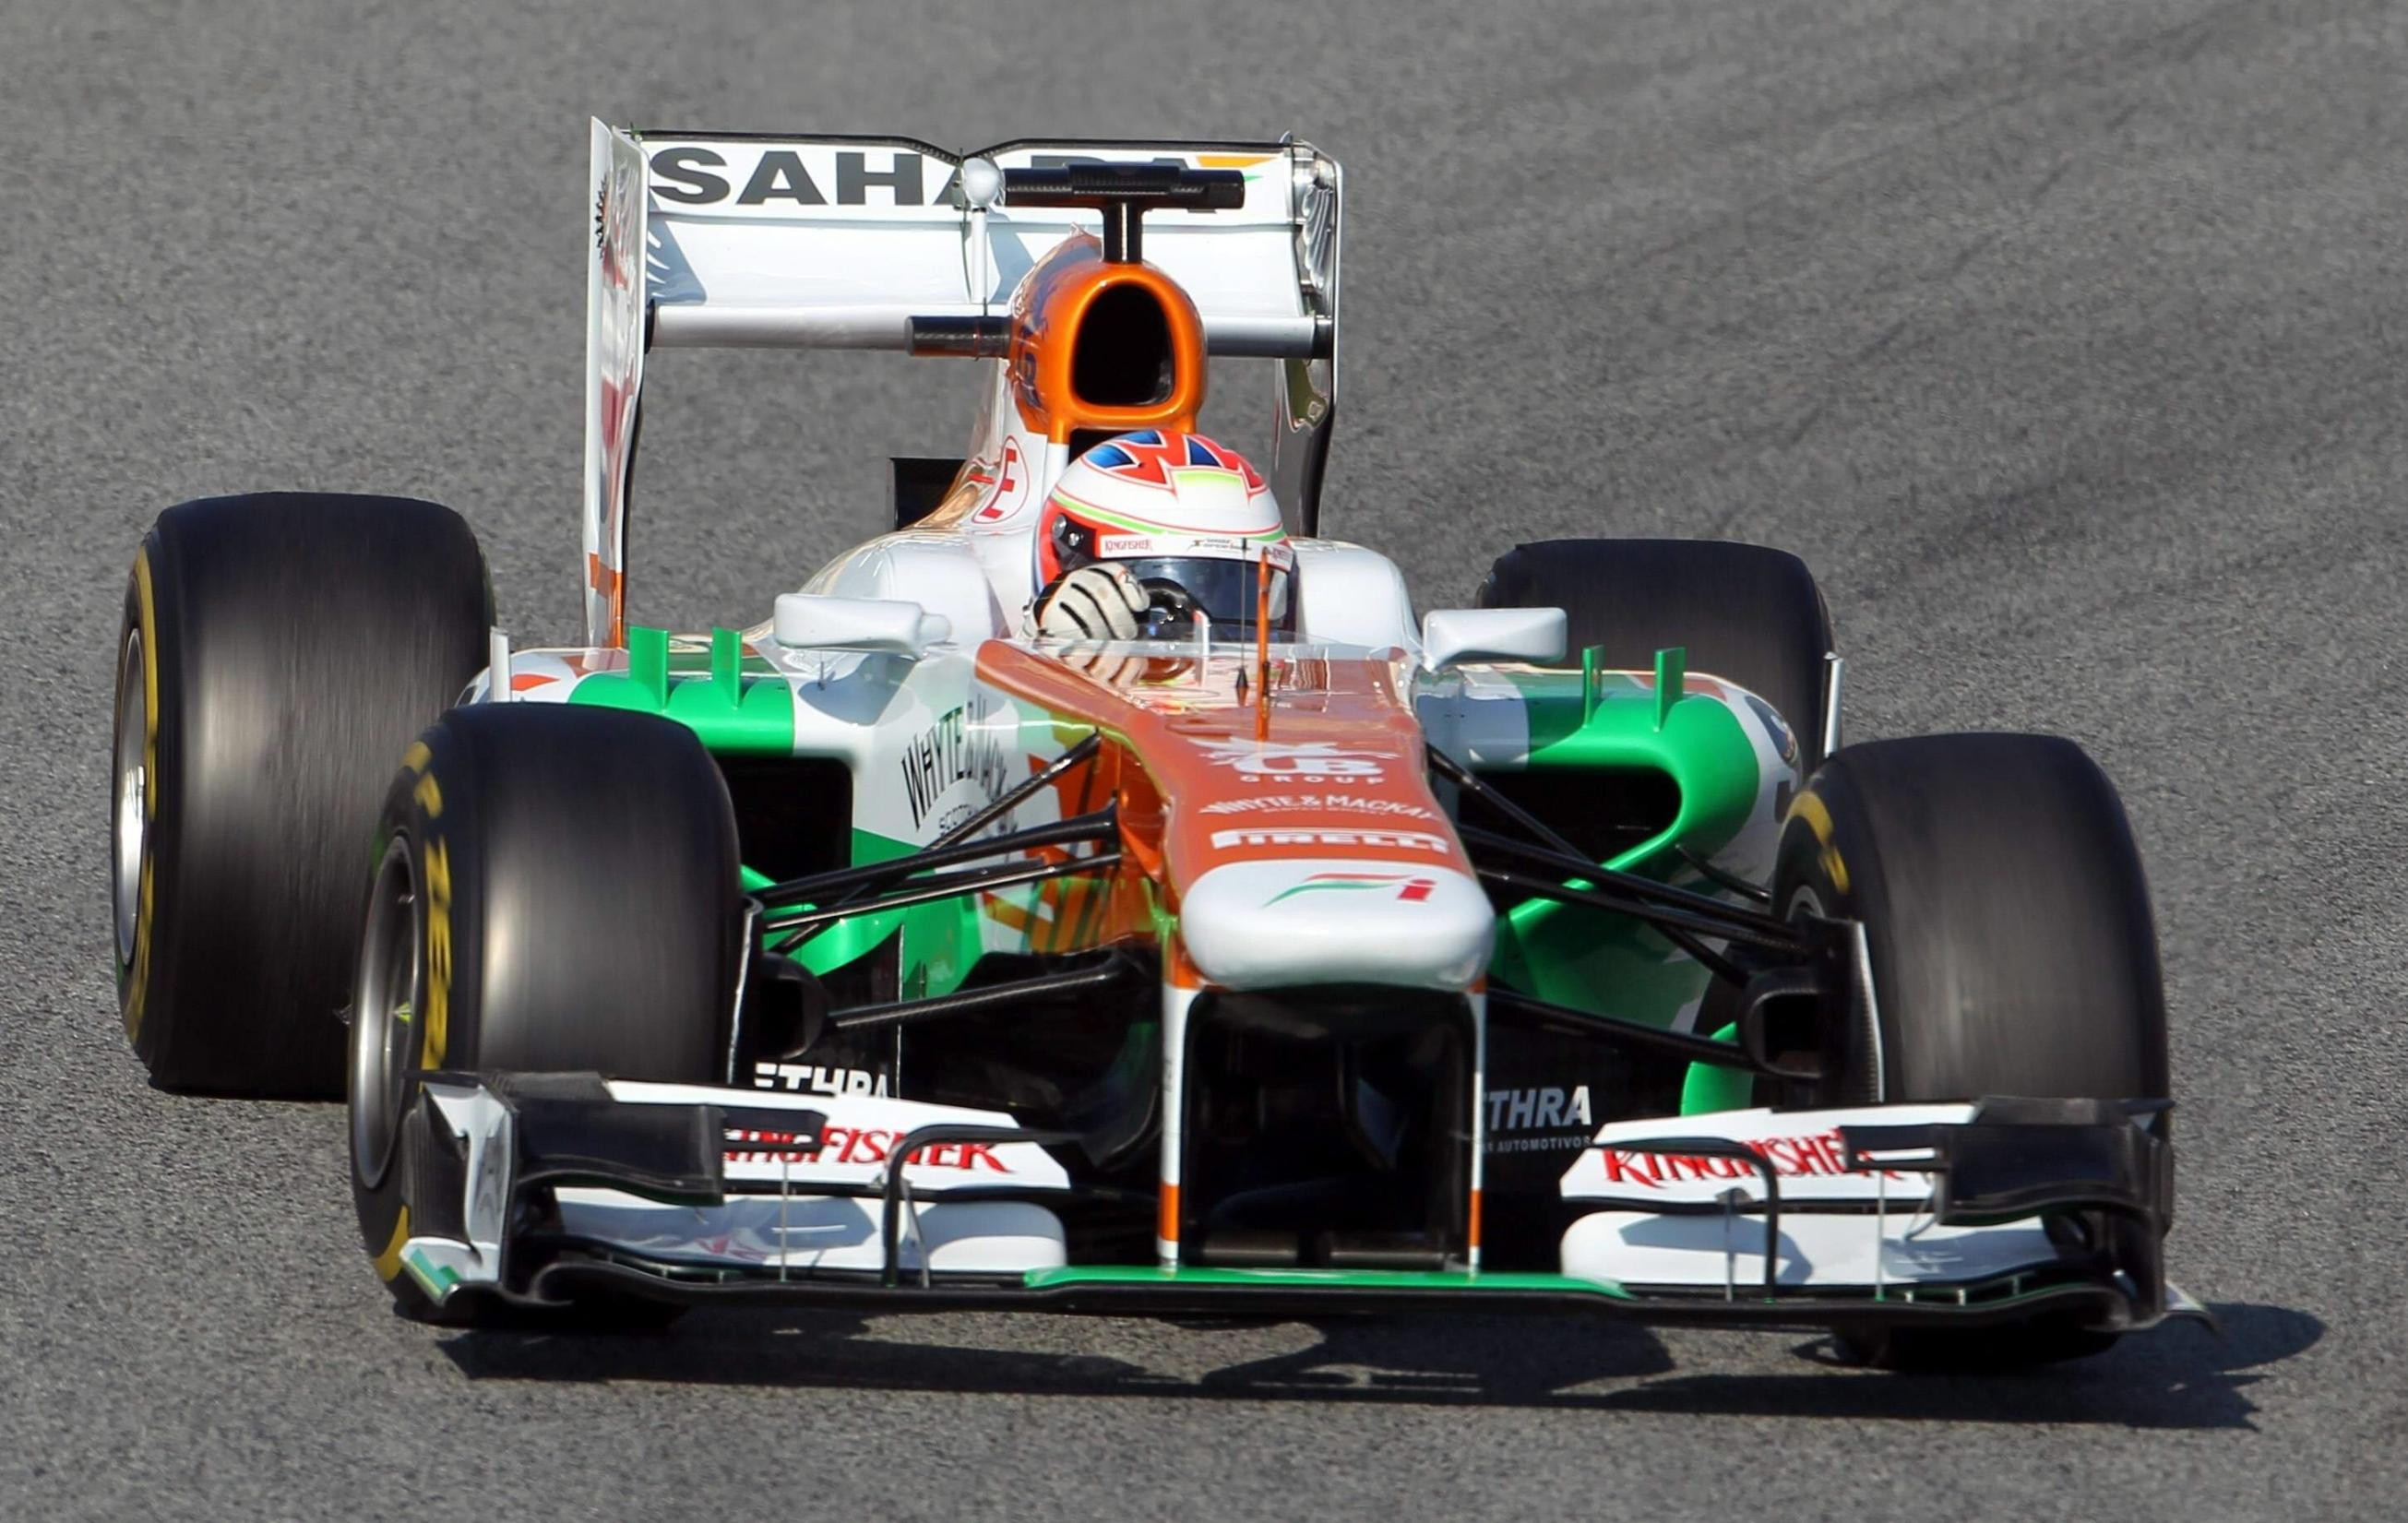 Paul Di Resta integra a equipa da Williams